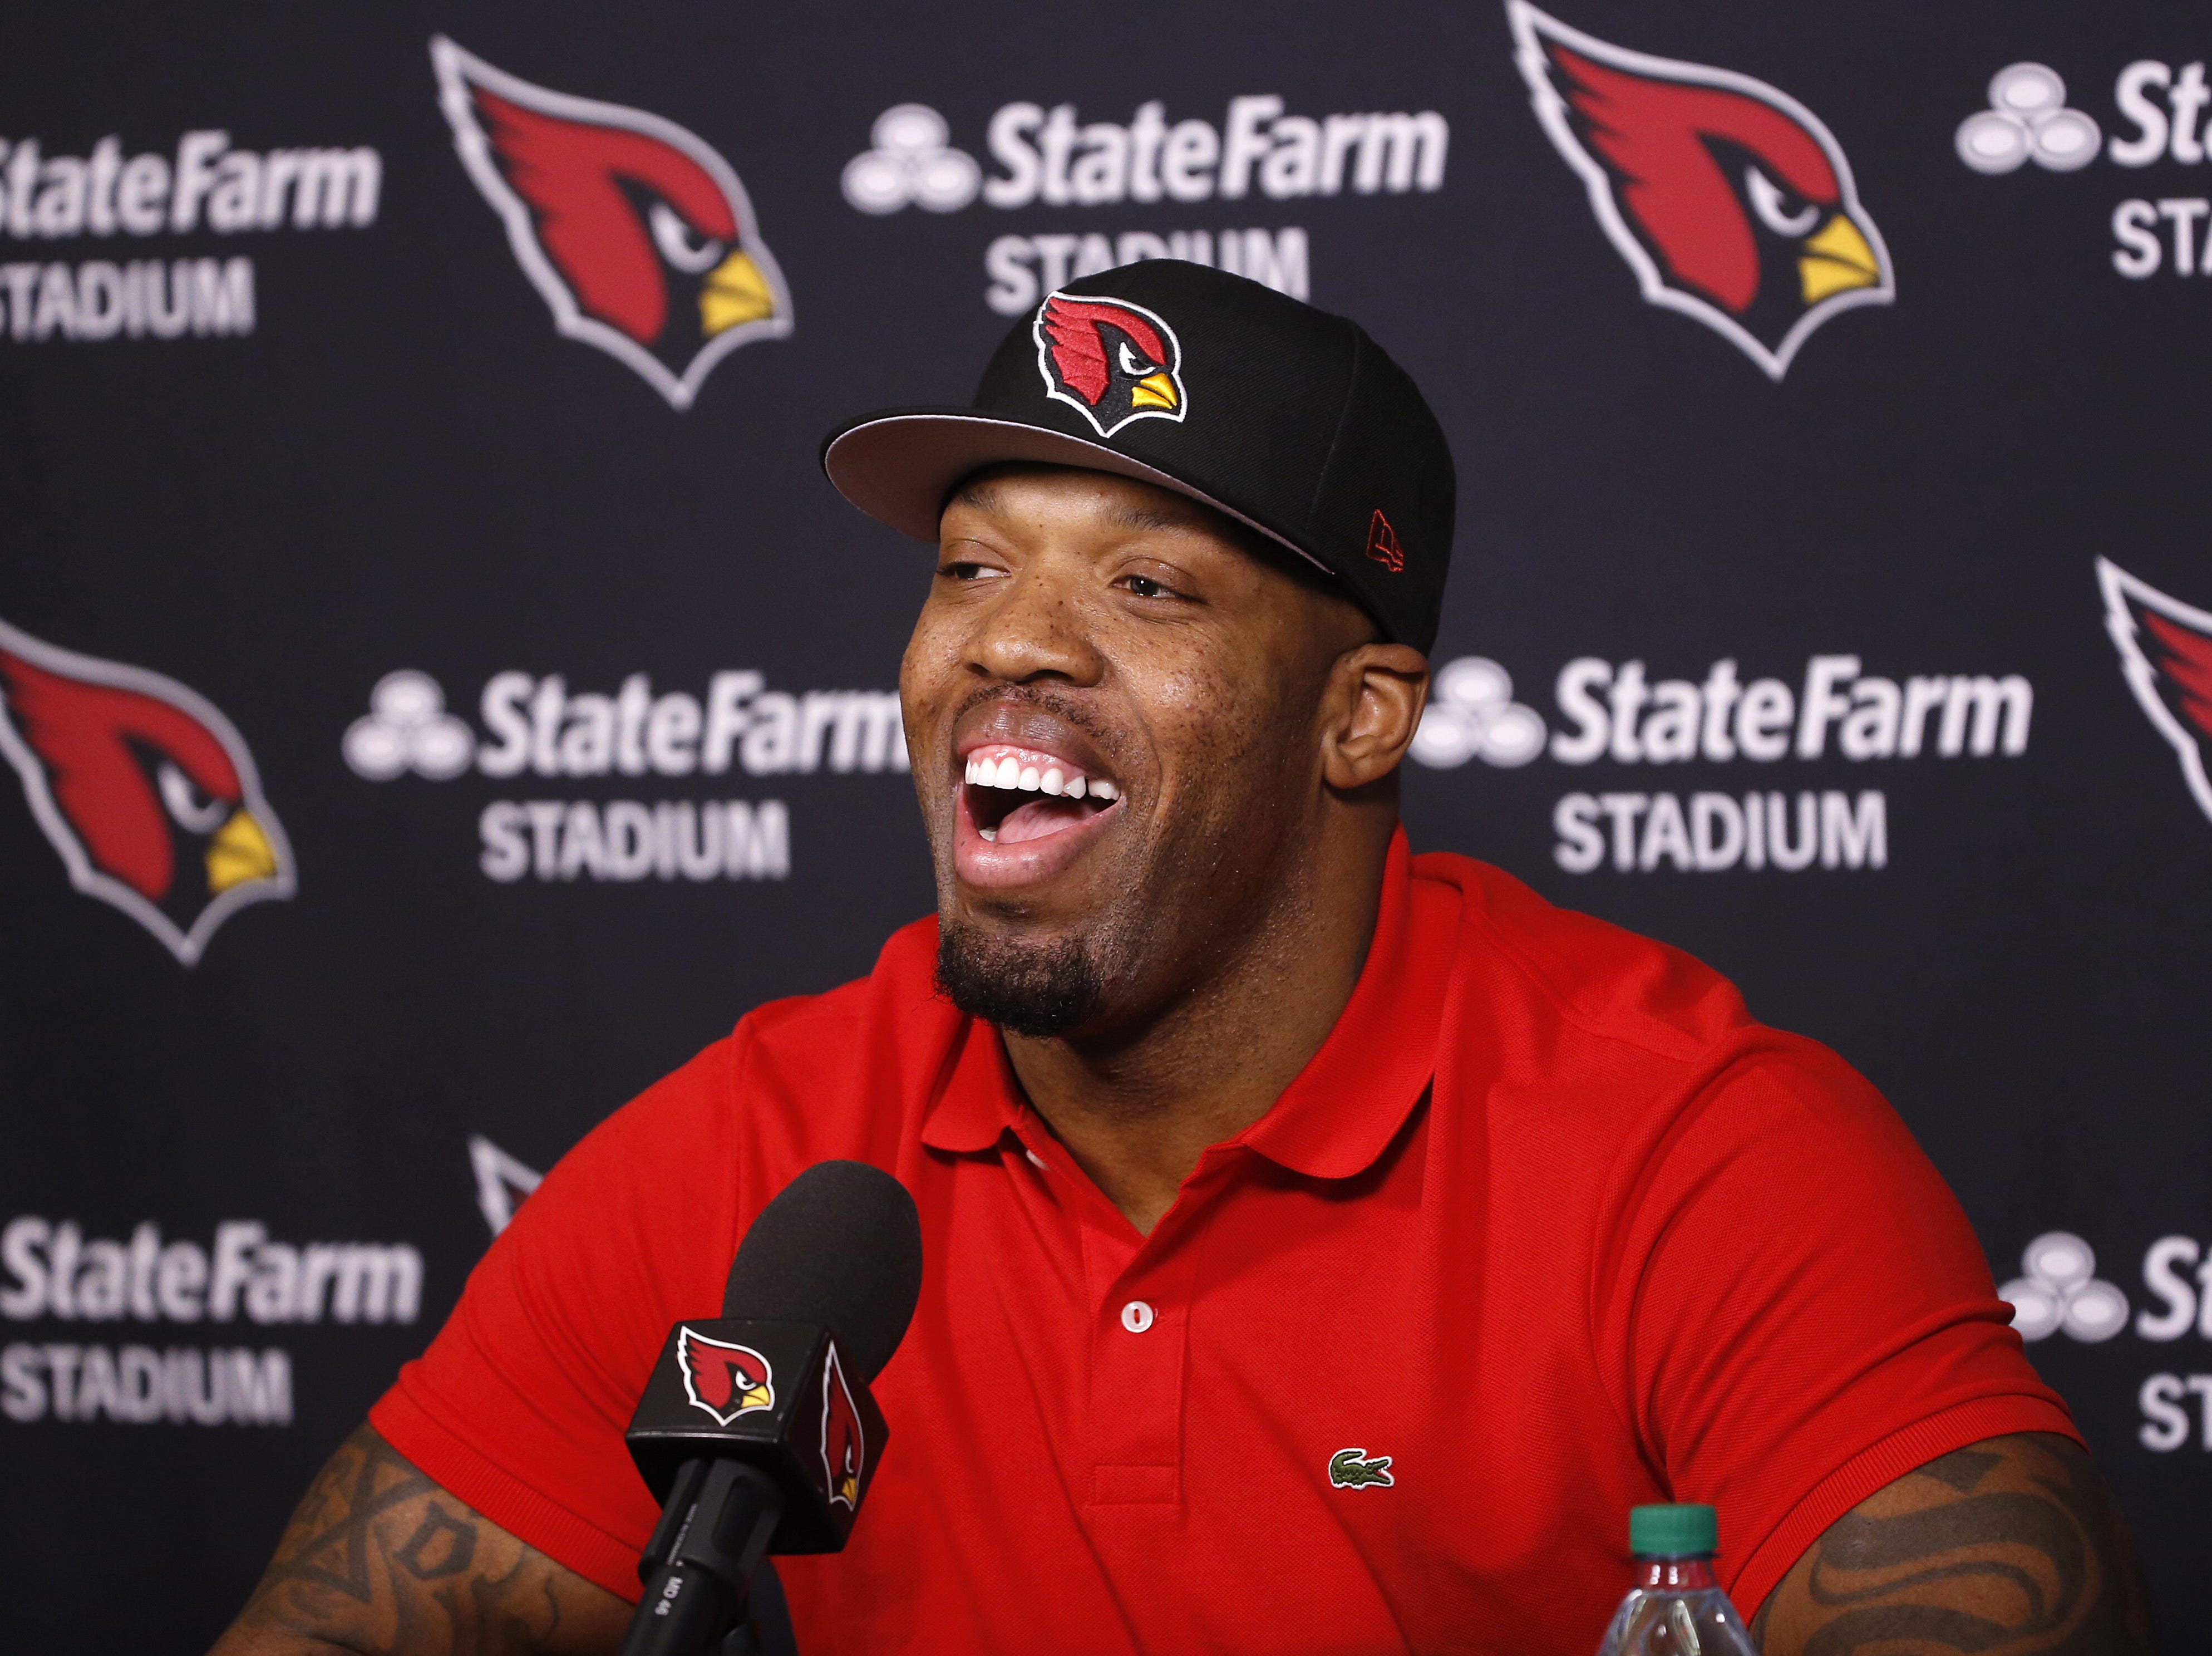 Terrell Suggs laughs while answering questions during his introductory press conference at the Arizona Cardinals Training Facility in Tempe, Ariz. on March 14, 2019.